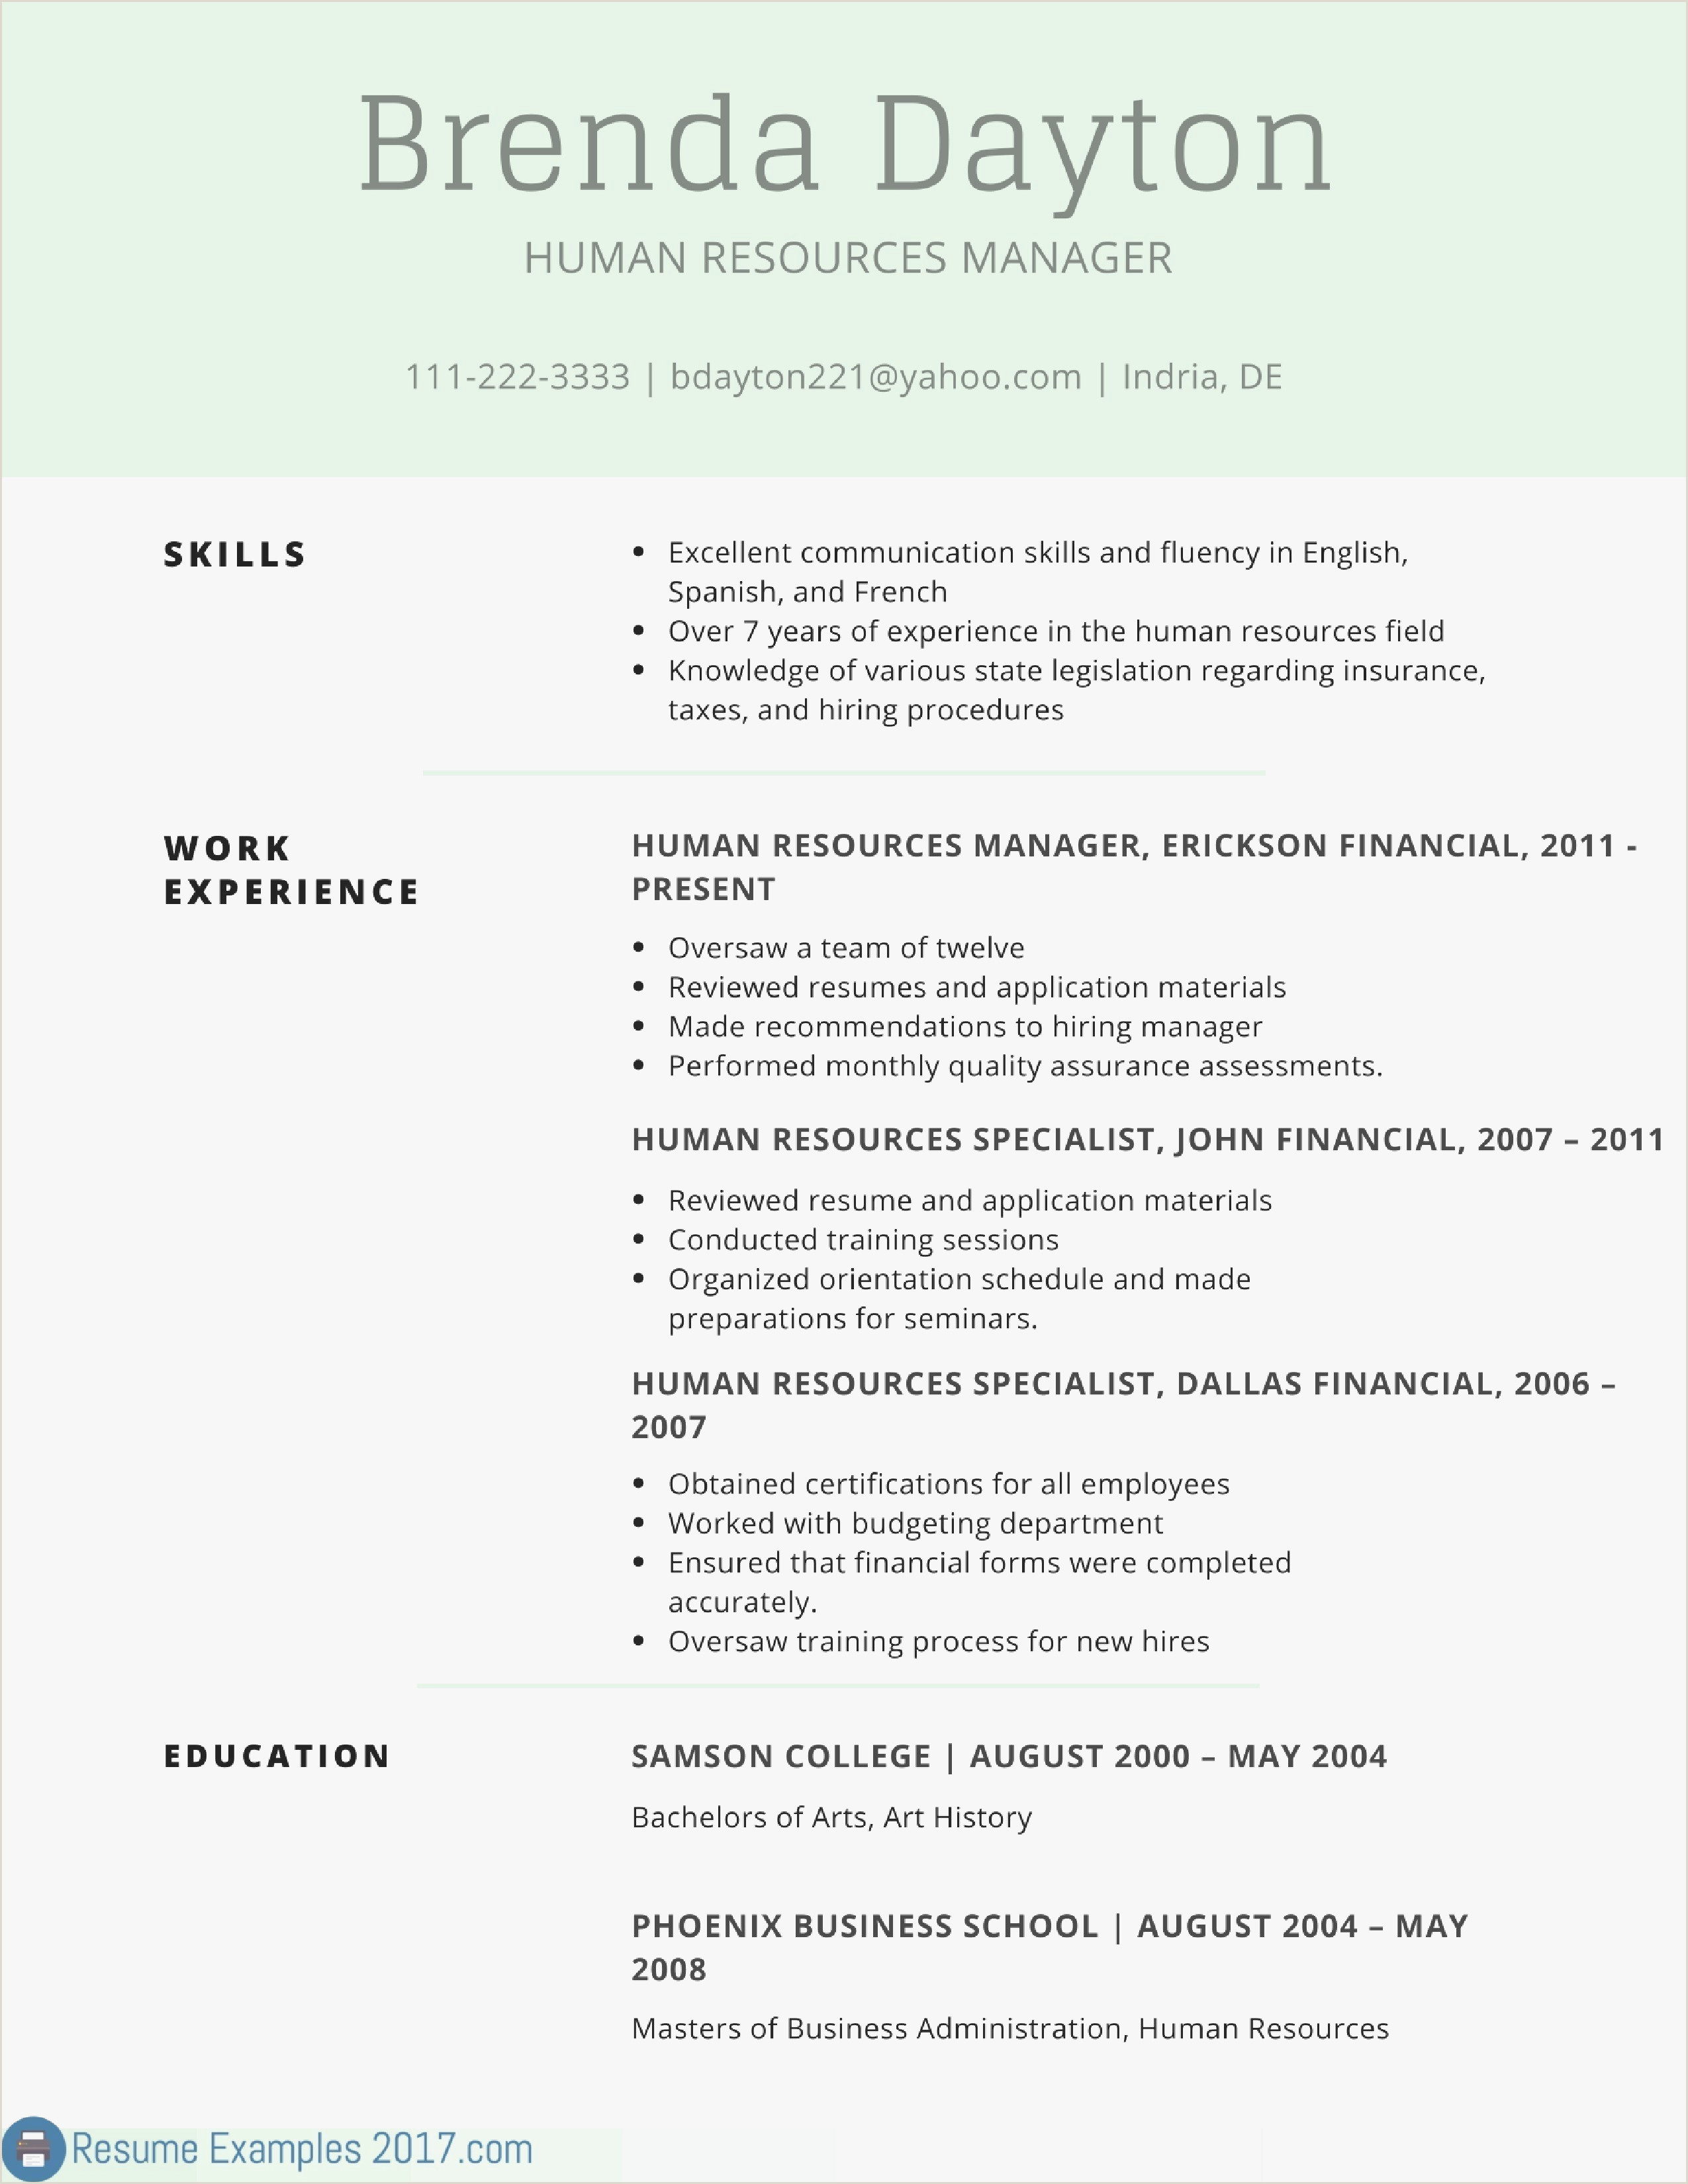 Simple Resume Template Best Resume and Cover Letter Examples